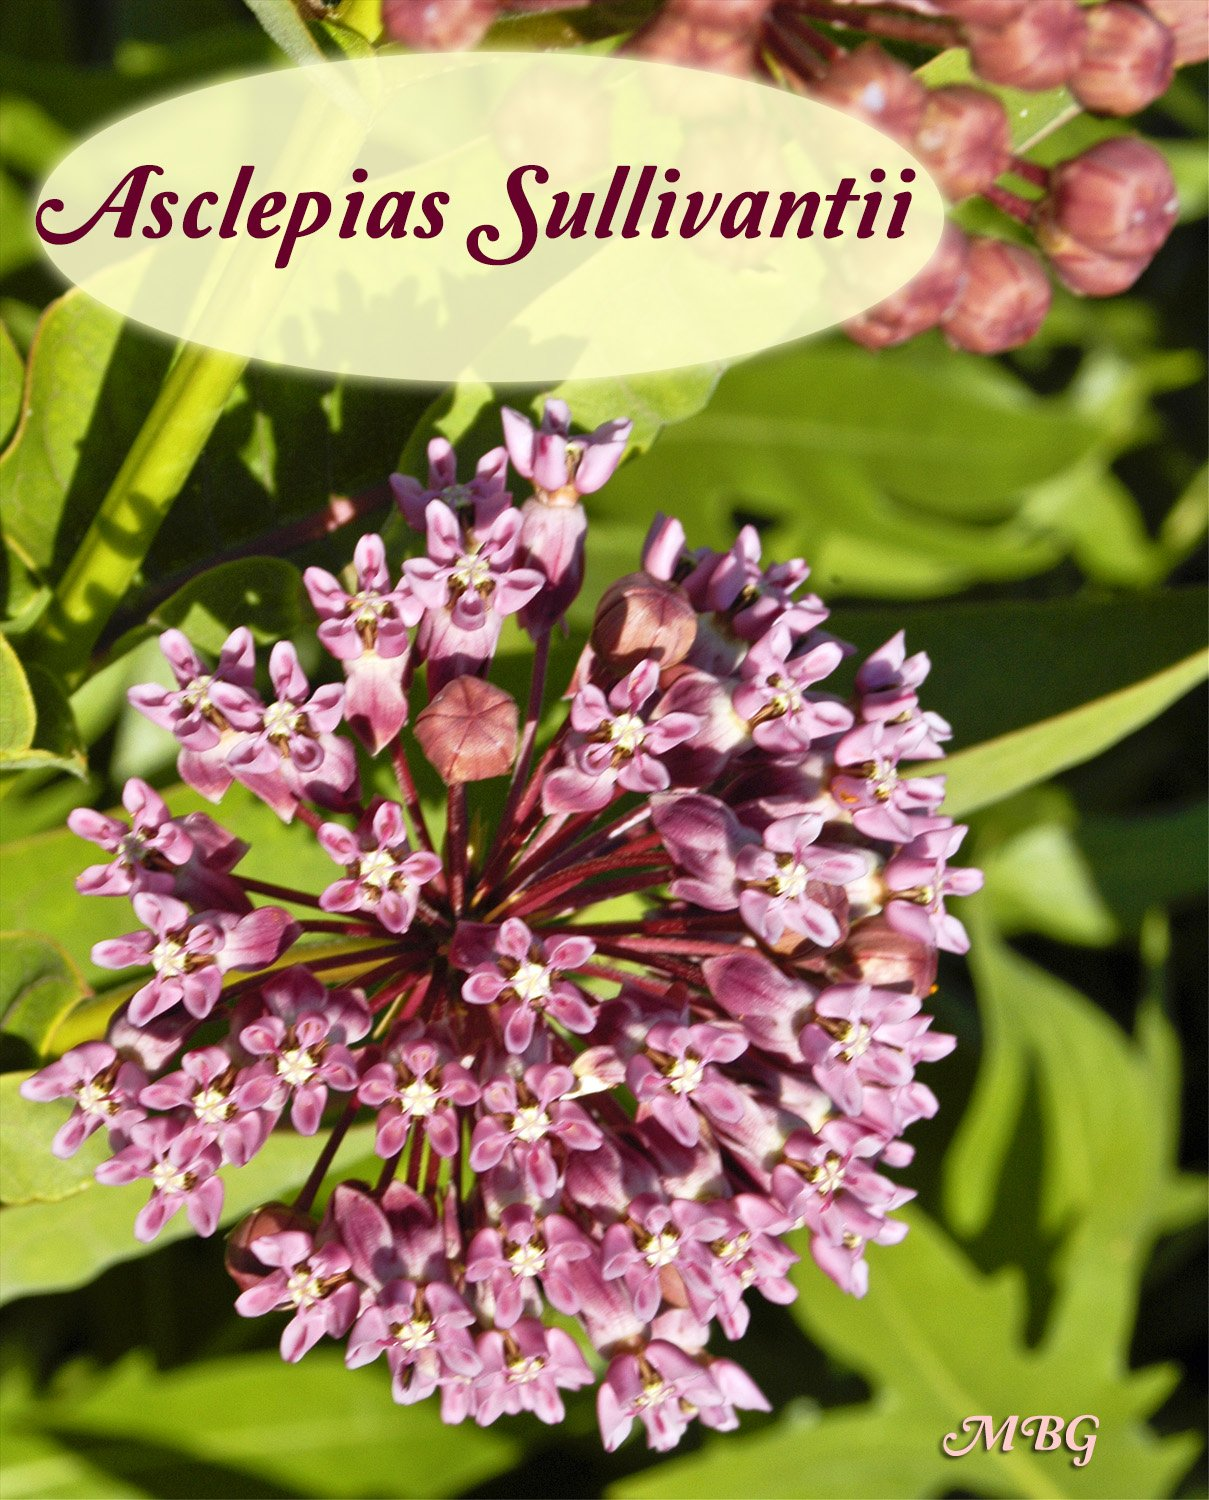 Prairie milkweed is similar to common milkweed, but is a slightly shorter variety and it plays nicer in the garden, leaving more room for your other garden plants. Buy Prairie Milkweed Seeds for your Butterfly Garden and get growing this season...